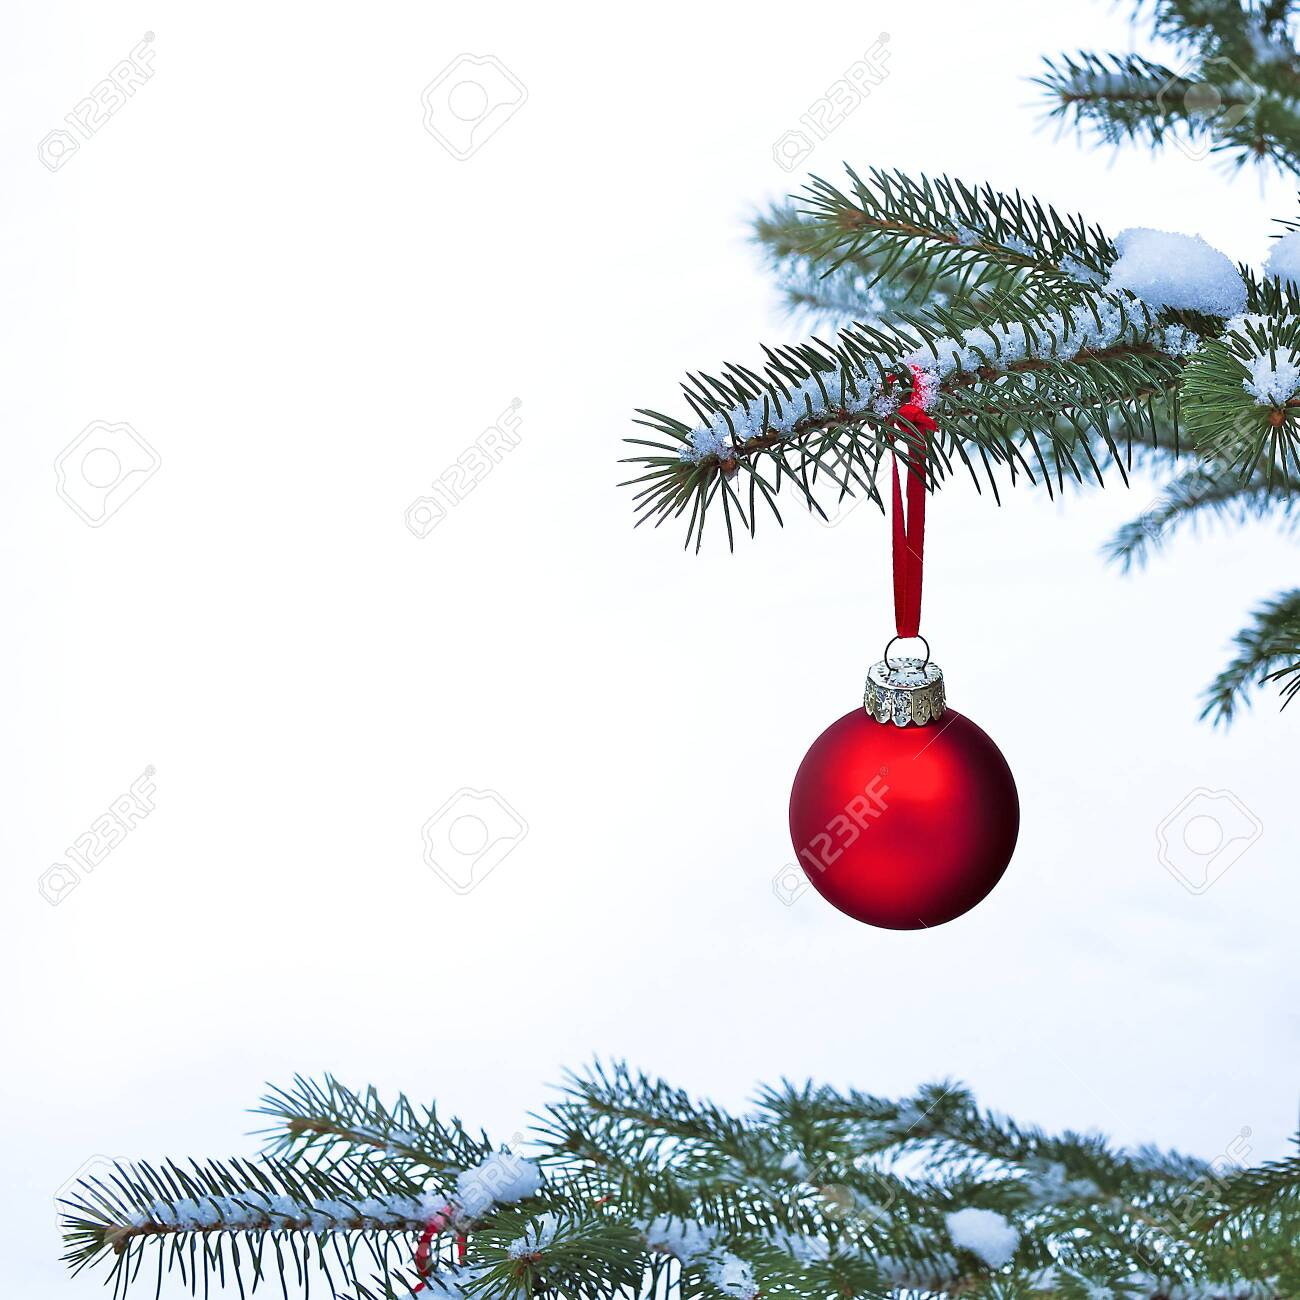 Close-up of red Christmas Bauble Ball hanging on snow covered pine tree branches outside. - 142320224